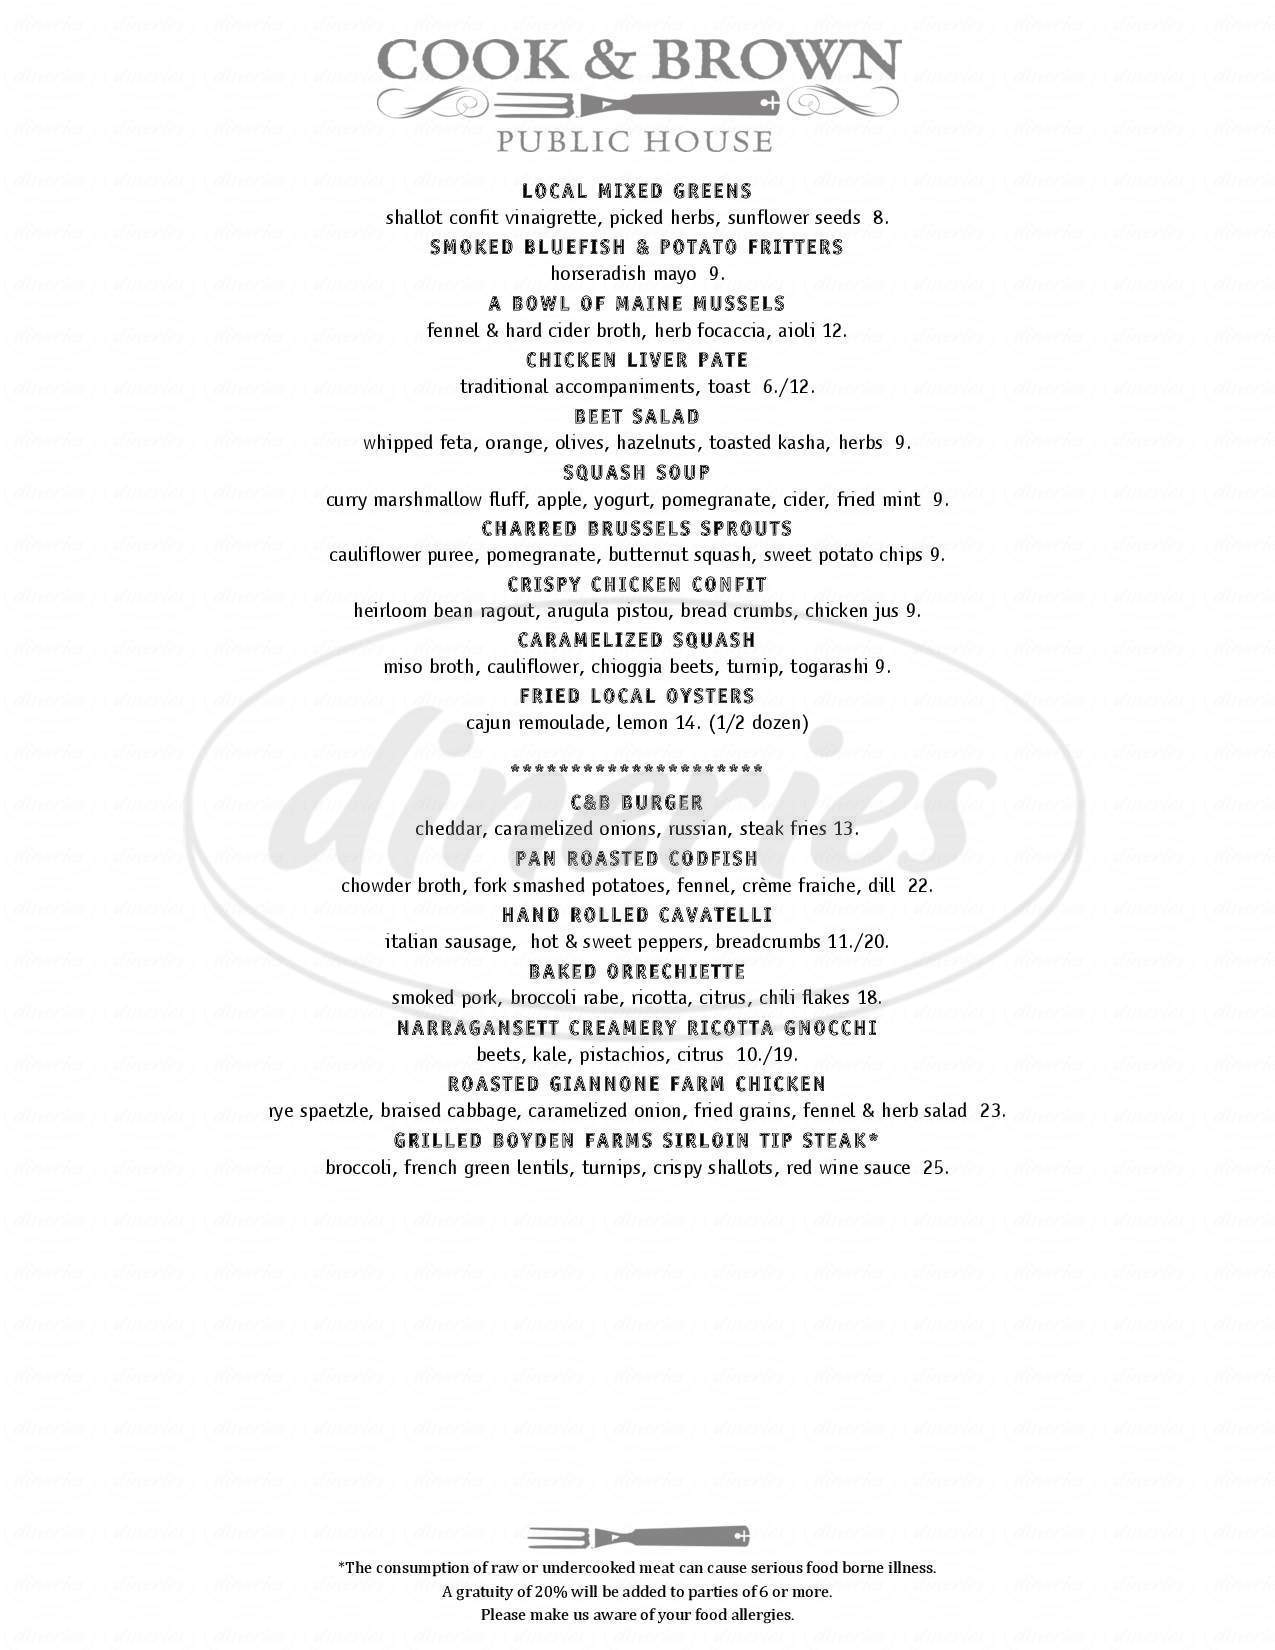 menu for Cook & Brown Public House